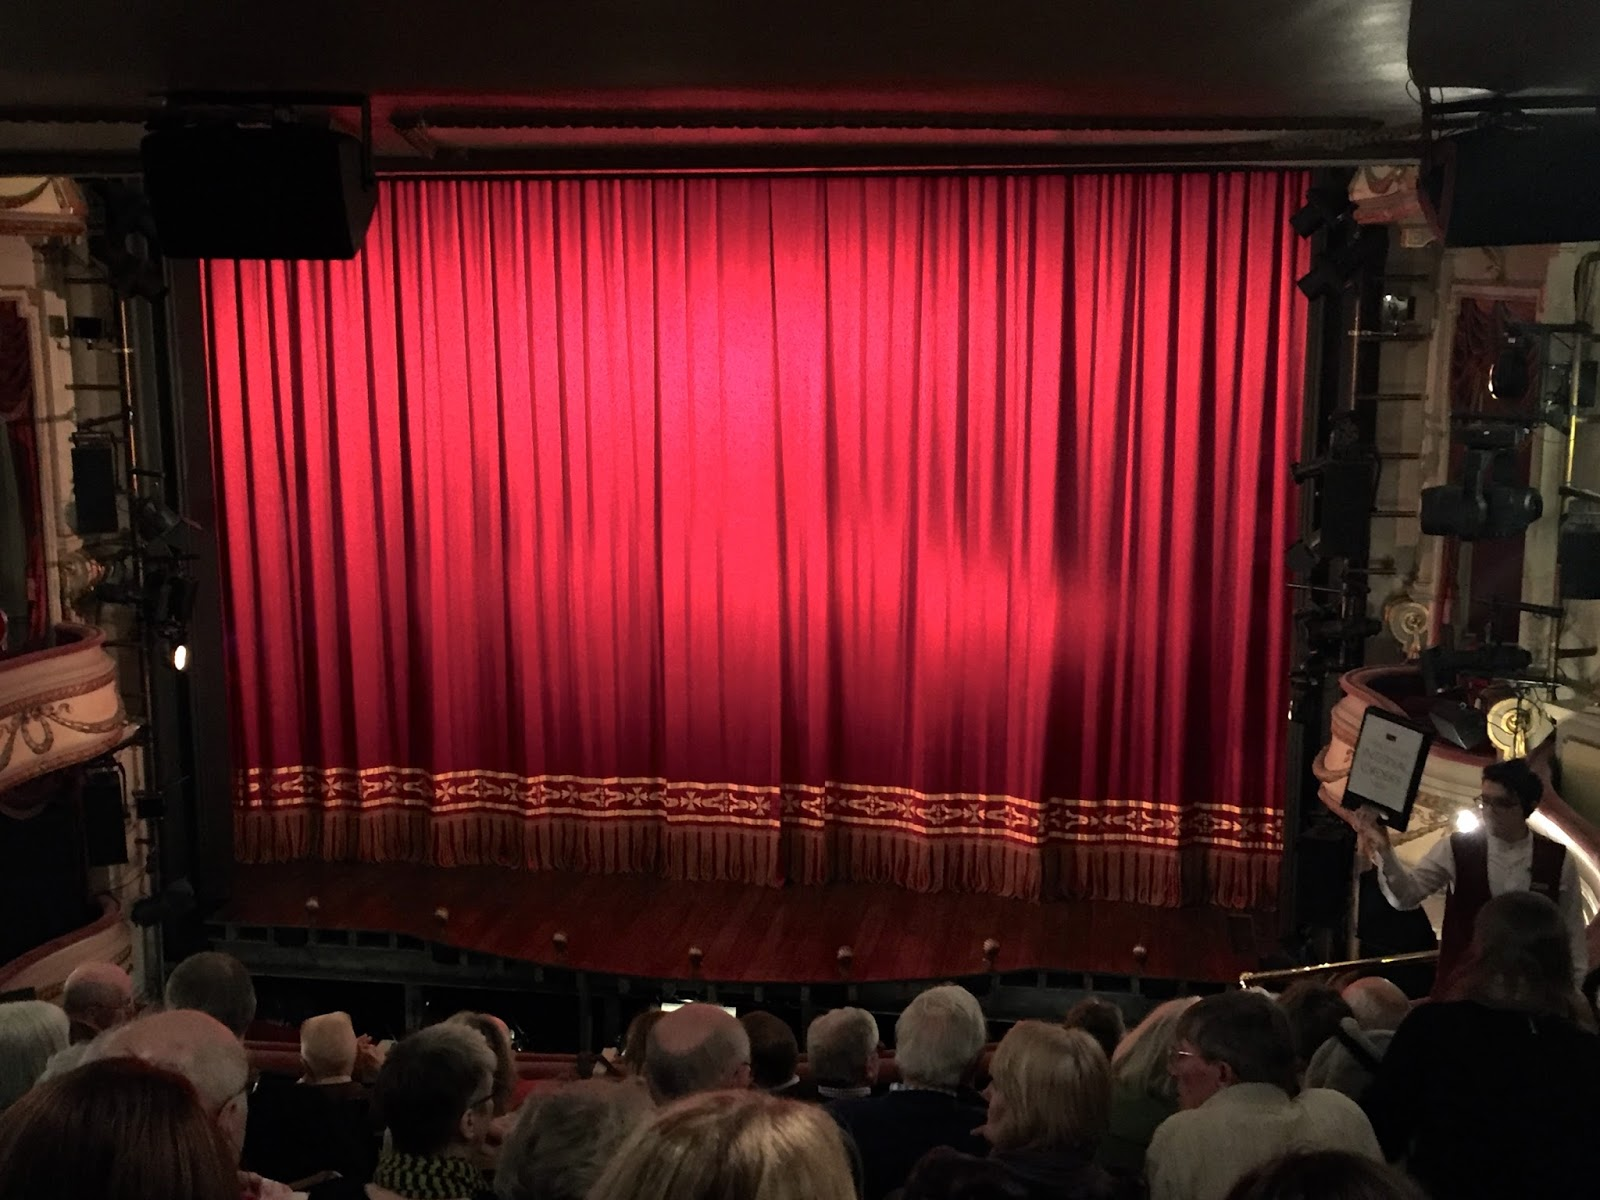 Noël Coward theatre seat view